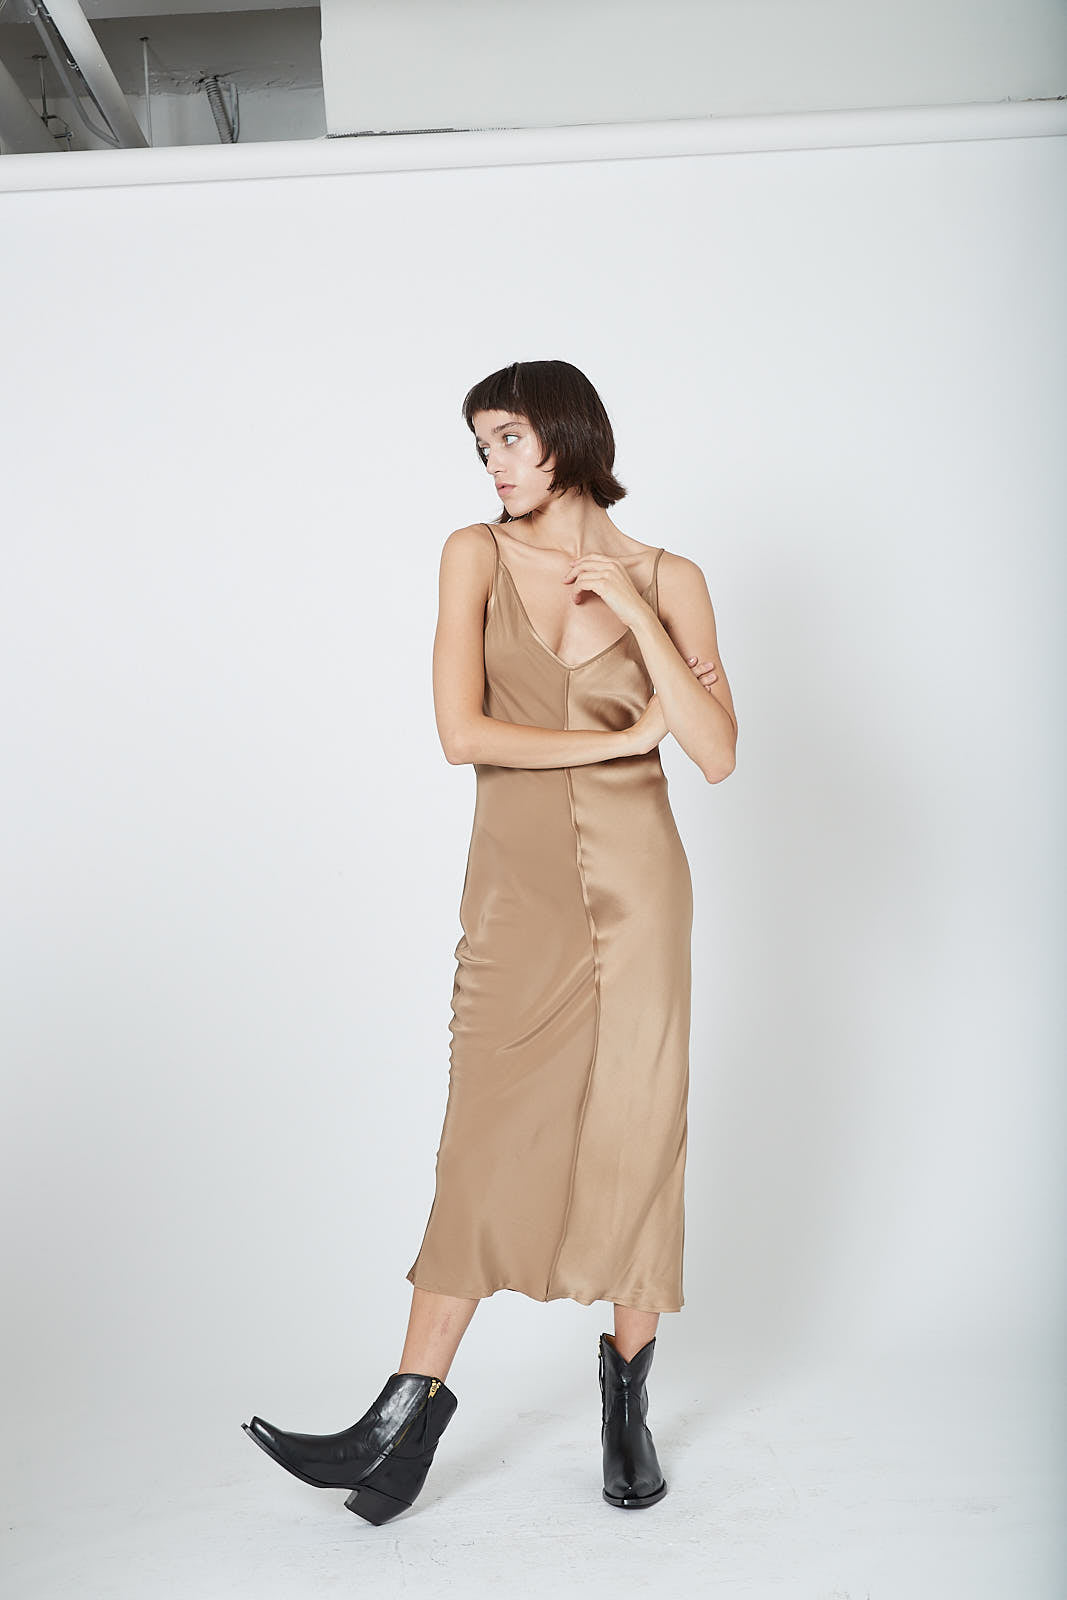 KES Quarter Slip Dress FW19 - Mud